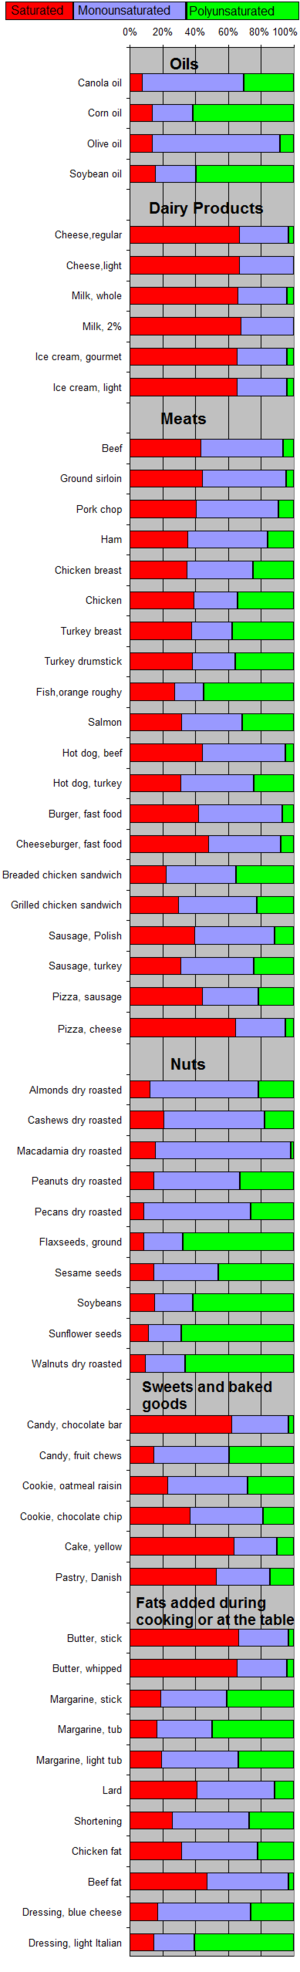 Fat composition in different foods. References...